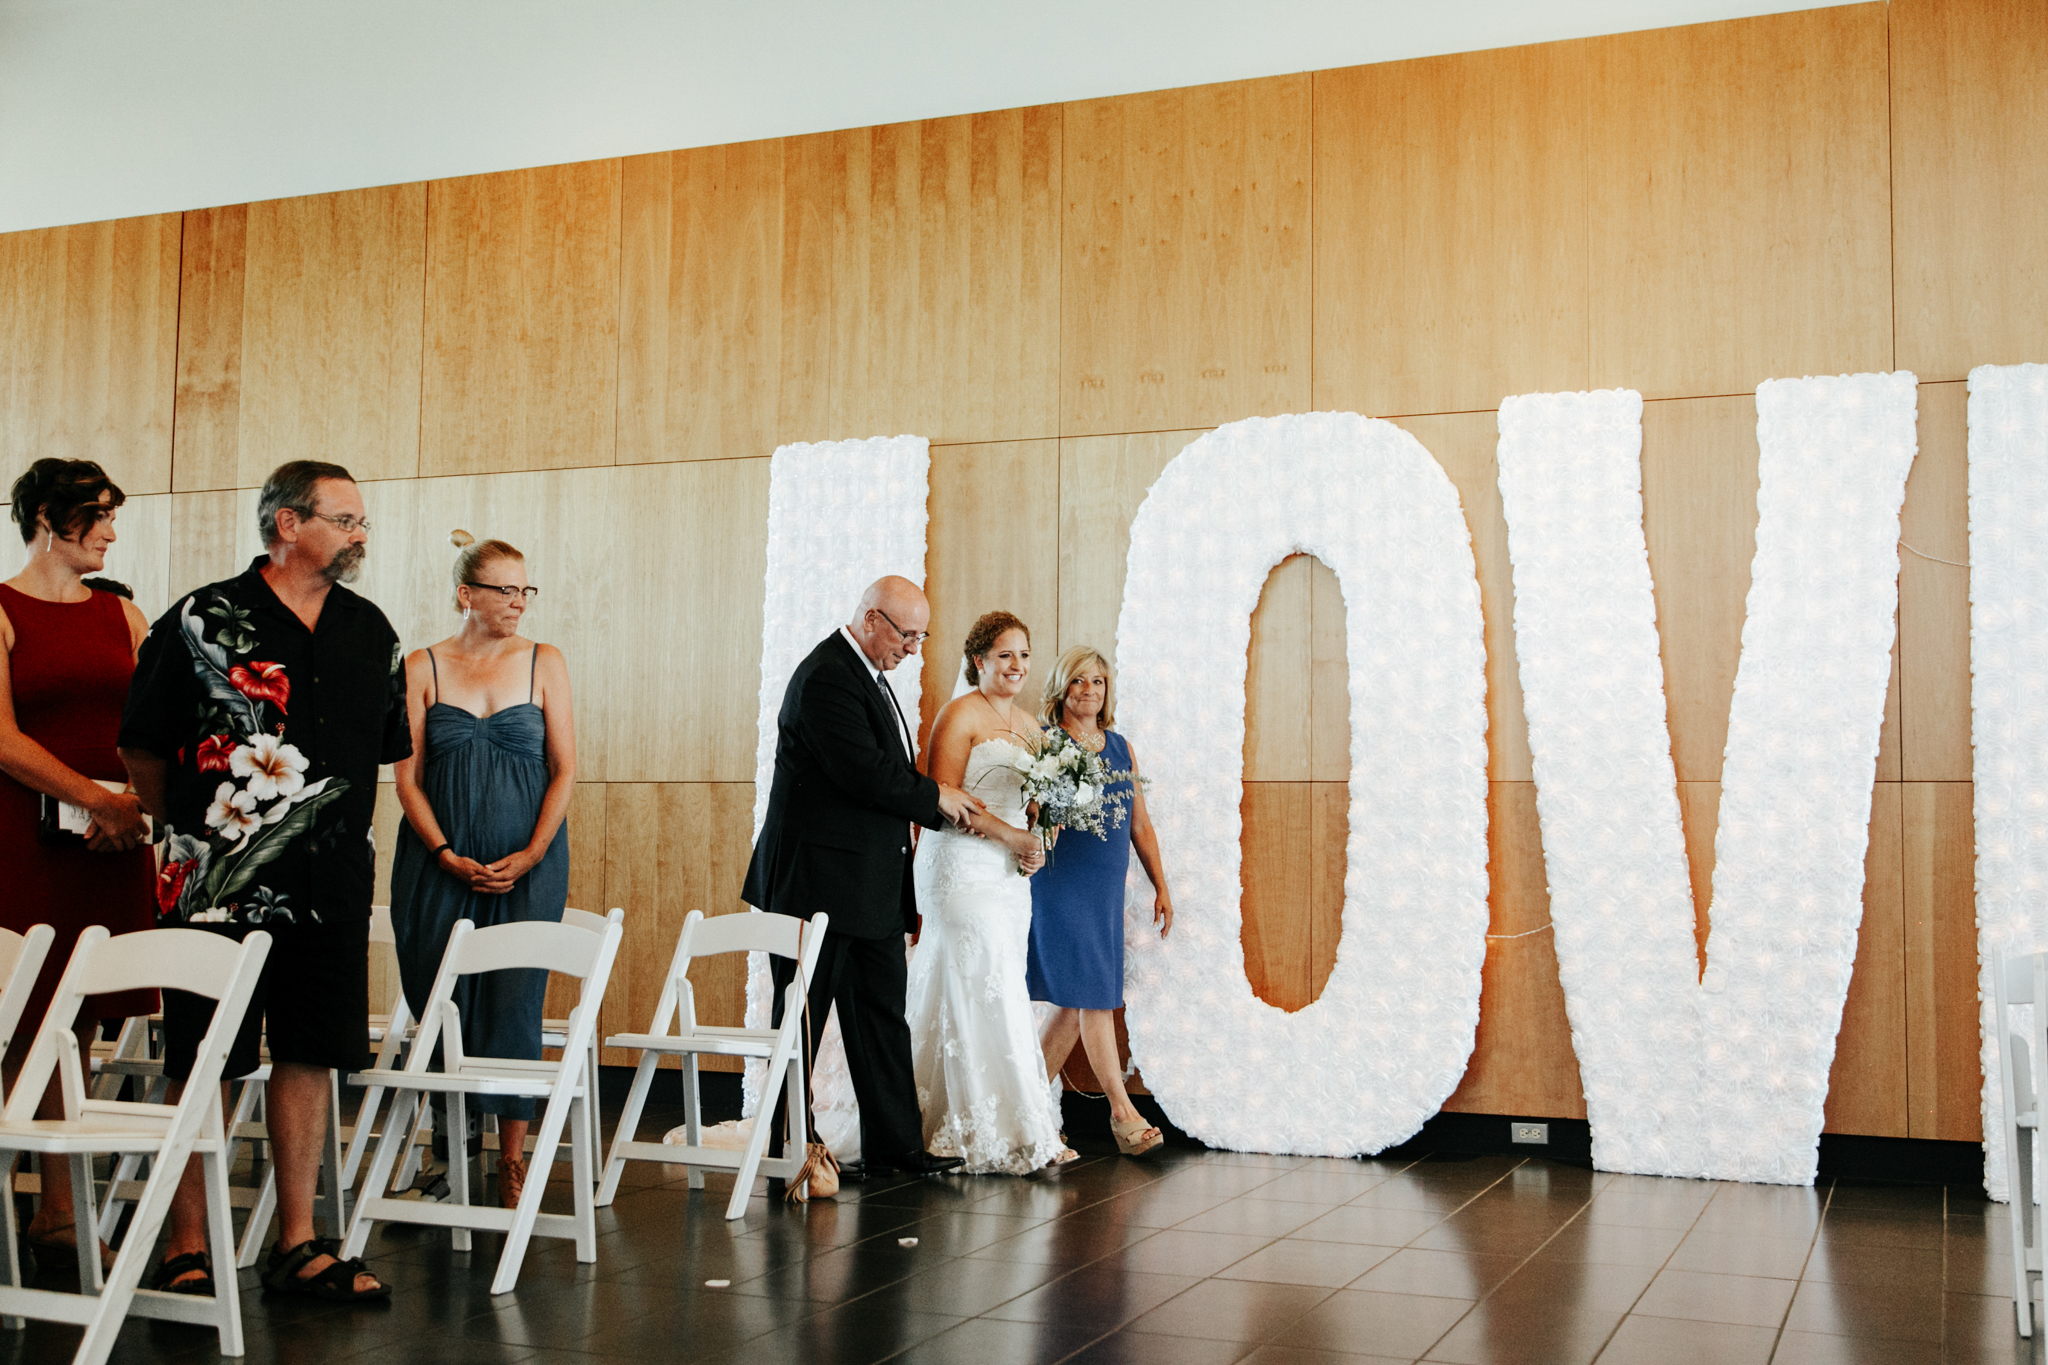 lethbridge-wedding-photographer-love-and-be-loved-photography-trent-danielle-galt-reception-picture-image-photo-44.jpg